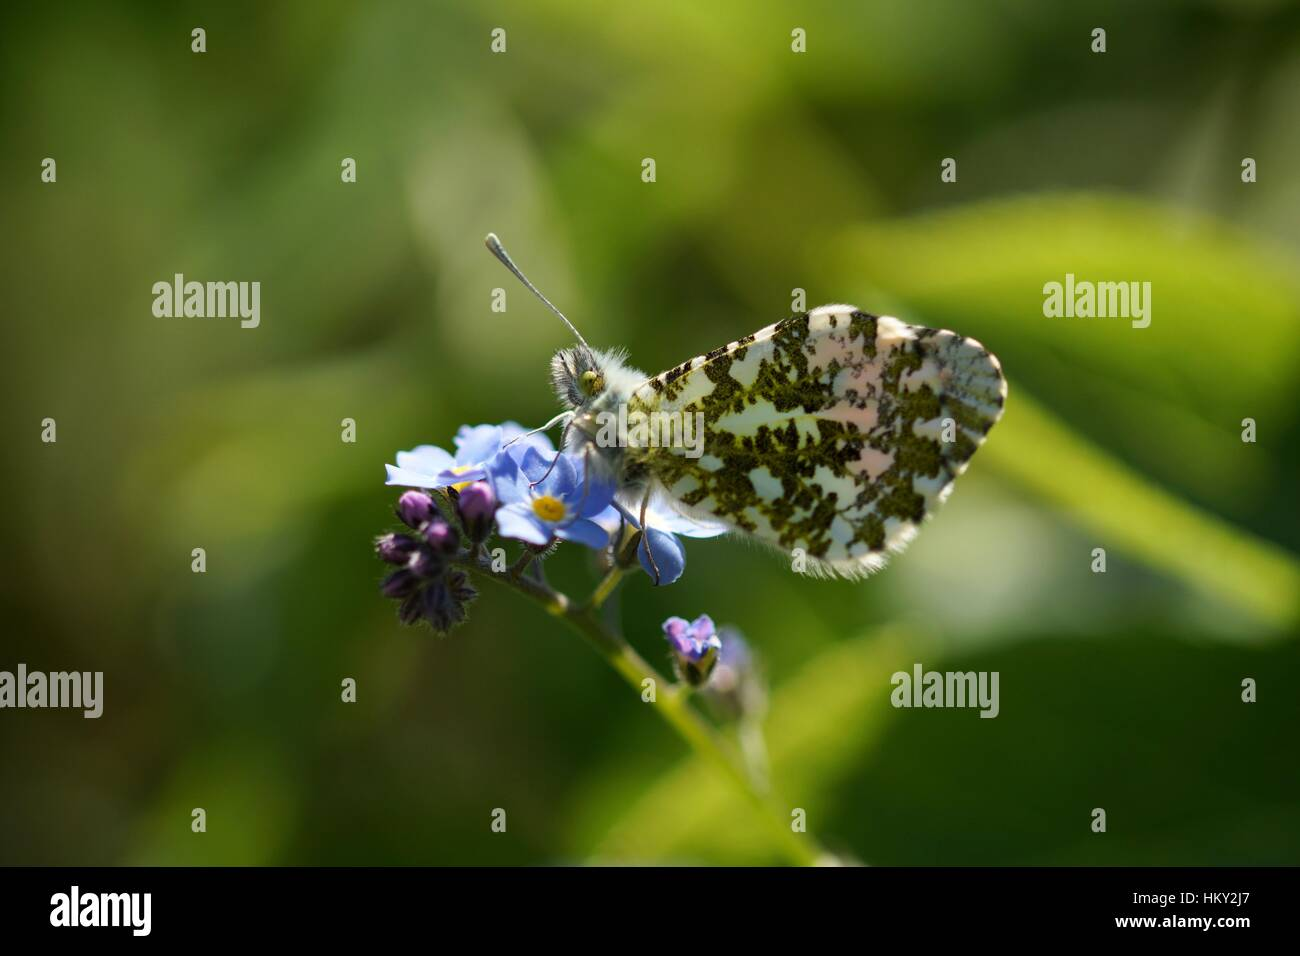 Small marbled white Butterfly on Forget me Not flowers - Stock Image